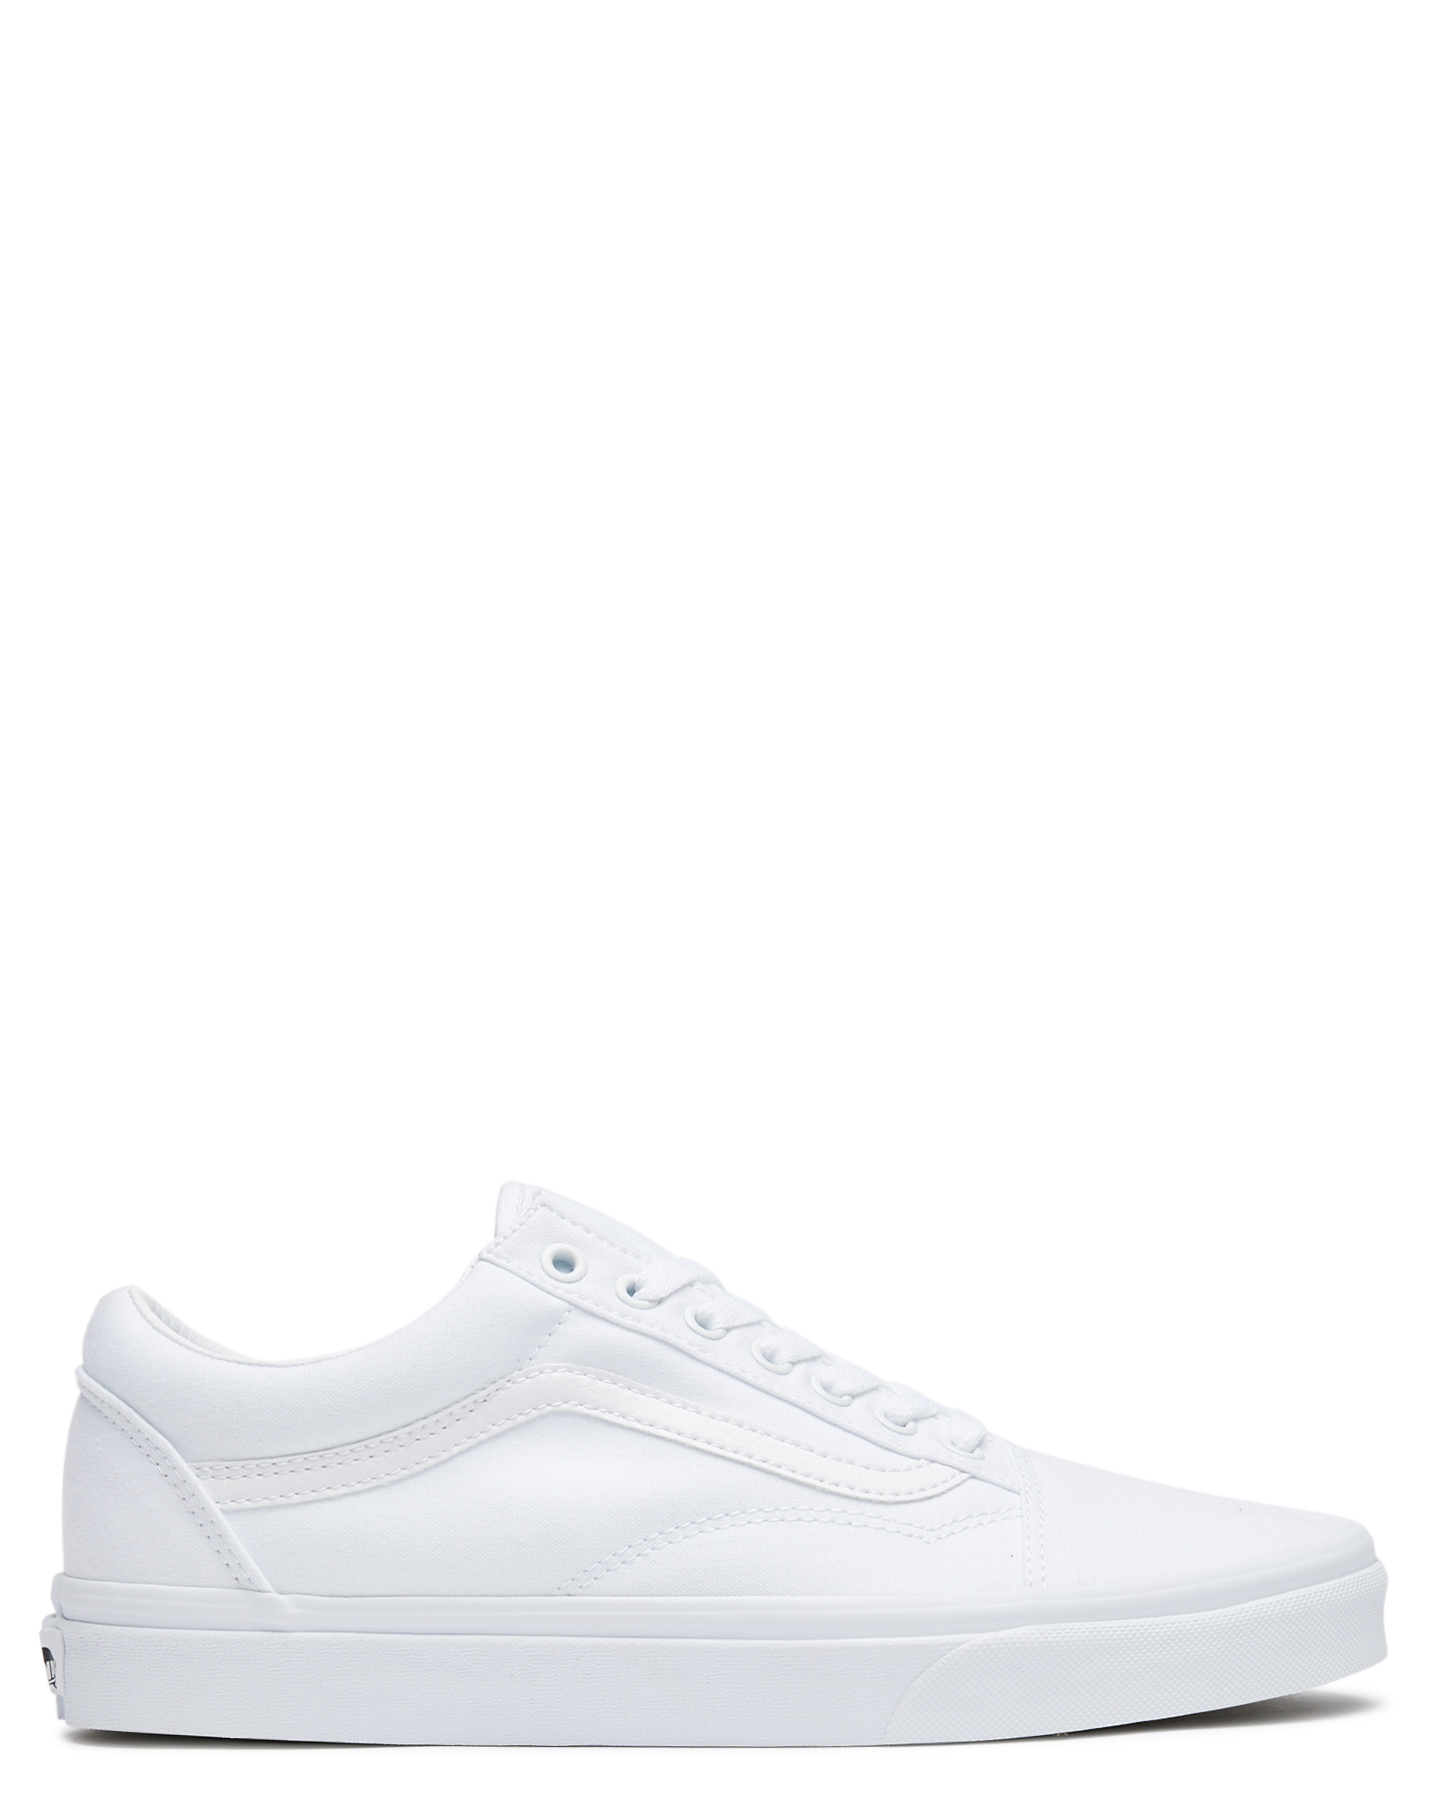 c16cf9de1a Vans Skate Men s Mens Old Skool Shoe Lace Soft White